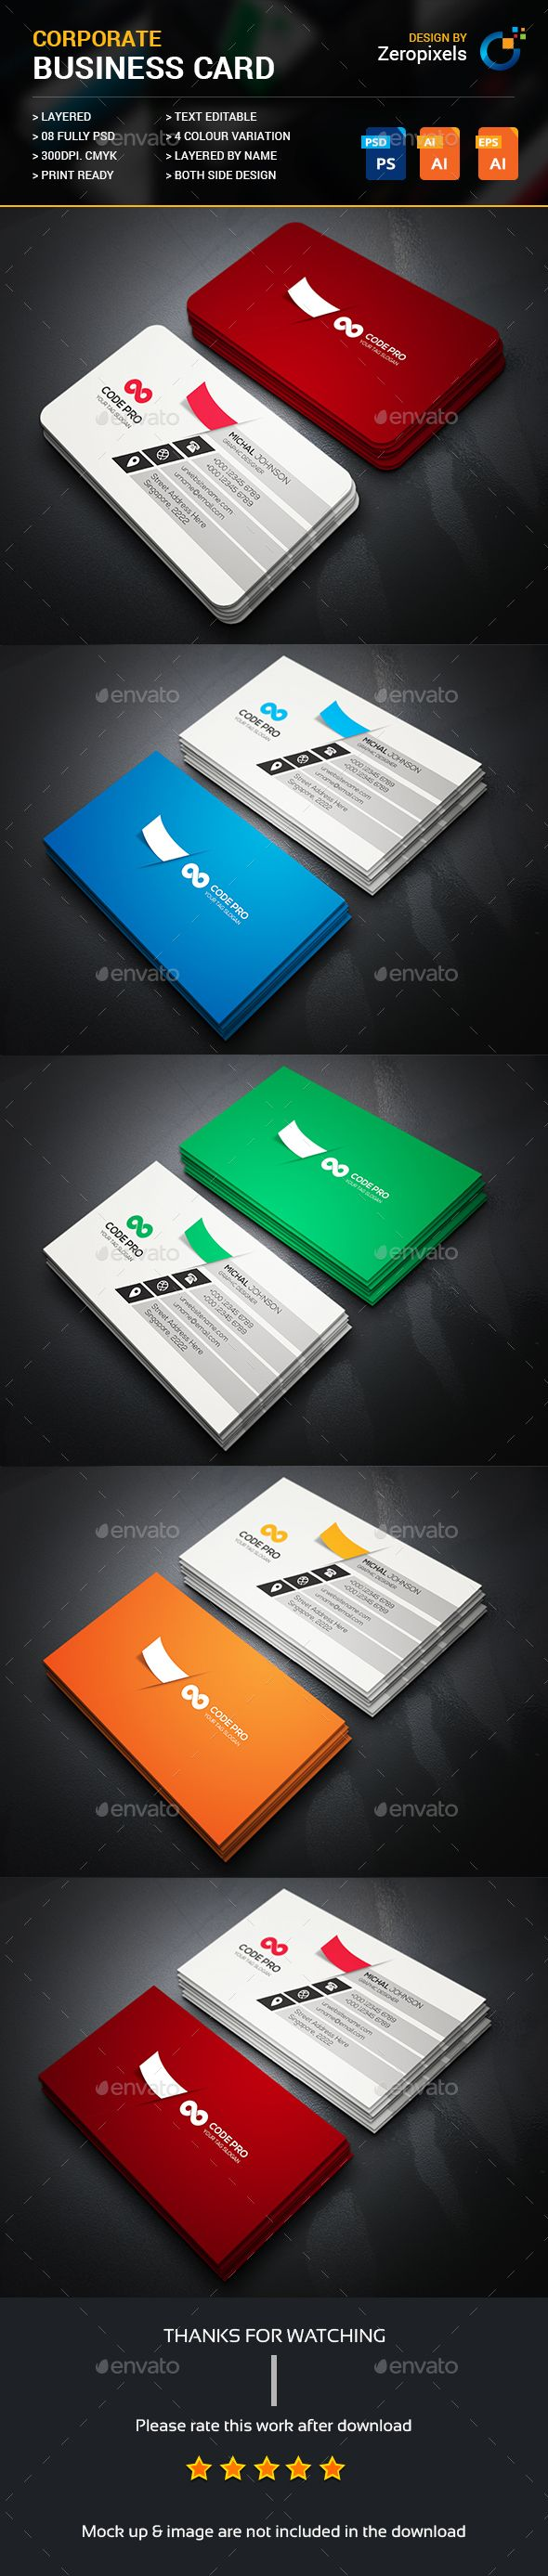 Business Card Template PSD, Vector EPS, AI Illustrator. Download here: https://graphicriver.net/item/business-card/17358232?ref=ksioks